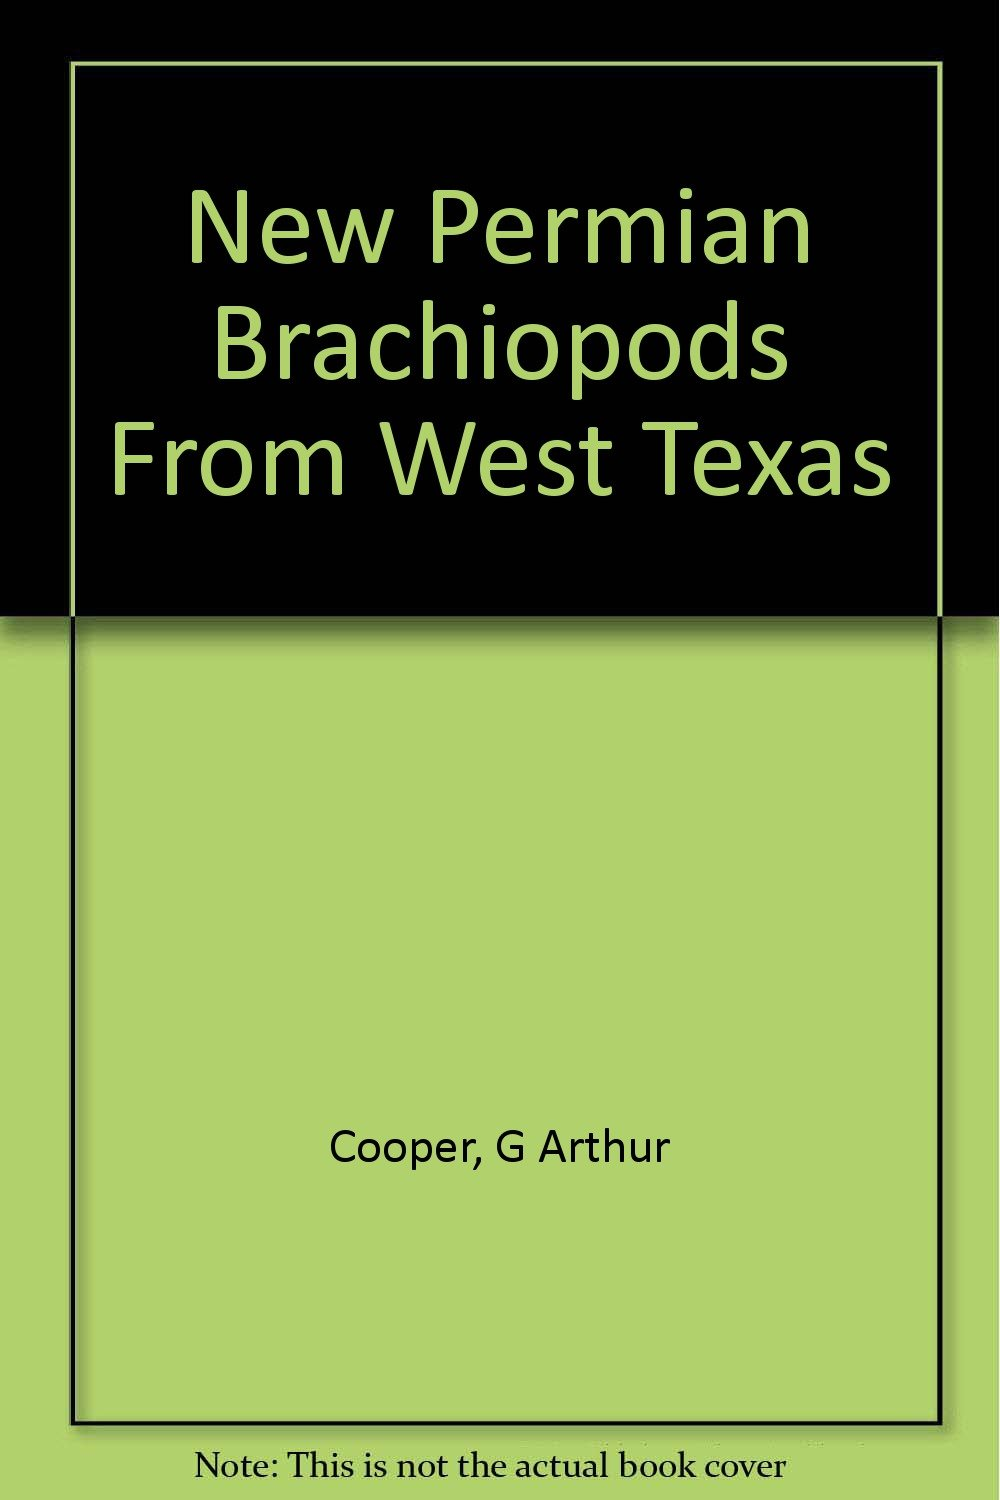 New Permian brachiopods from west Texas (Smithsonian contributions to paleobiology, no. 1)